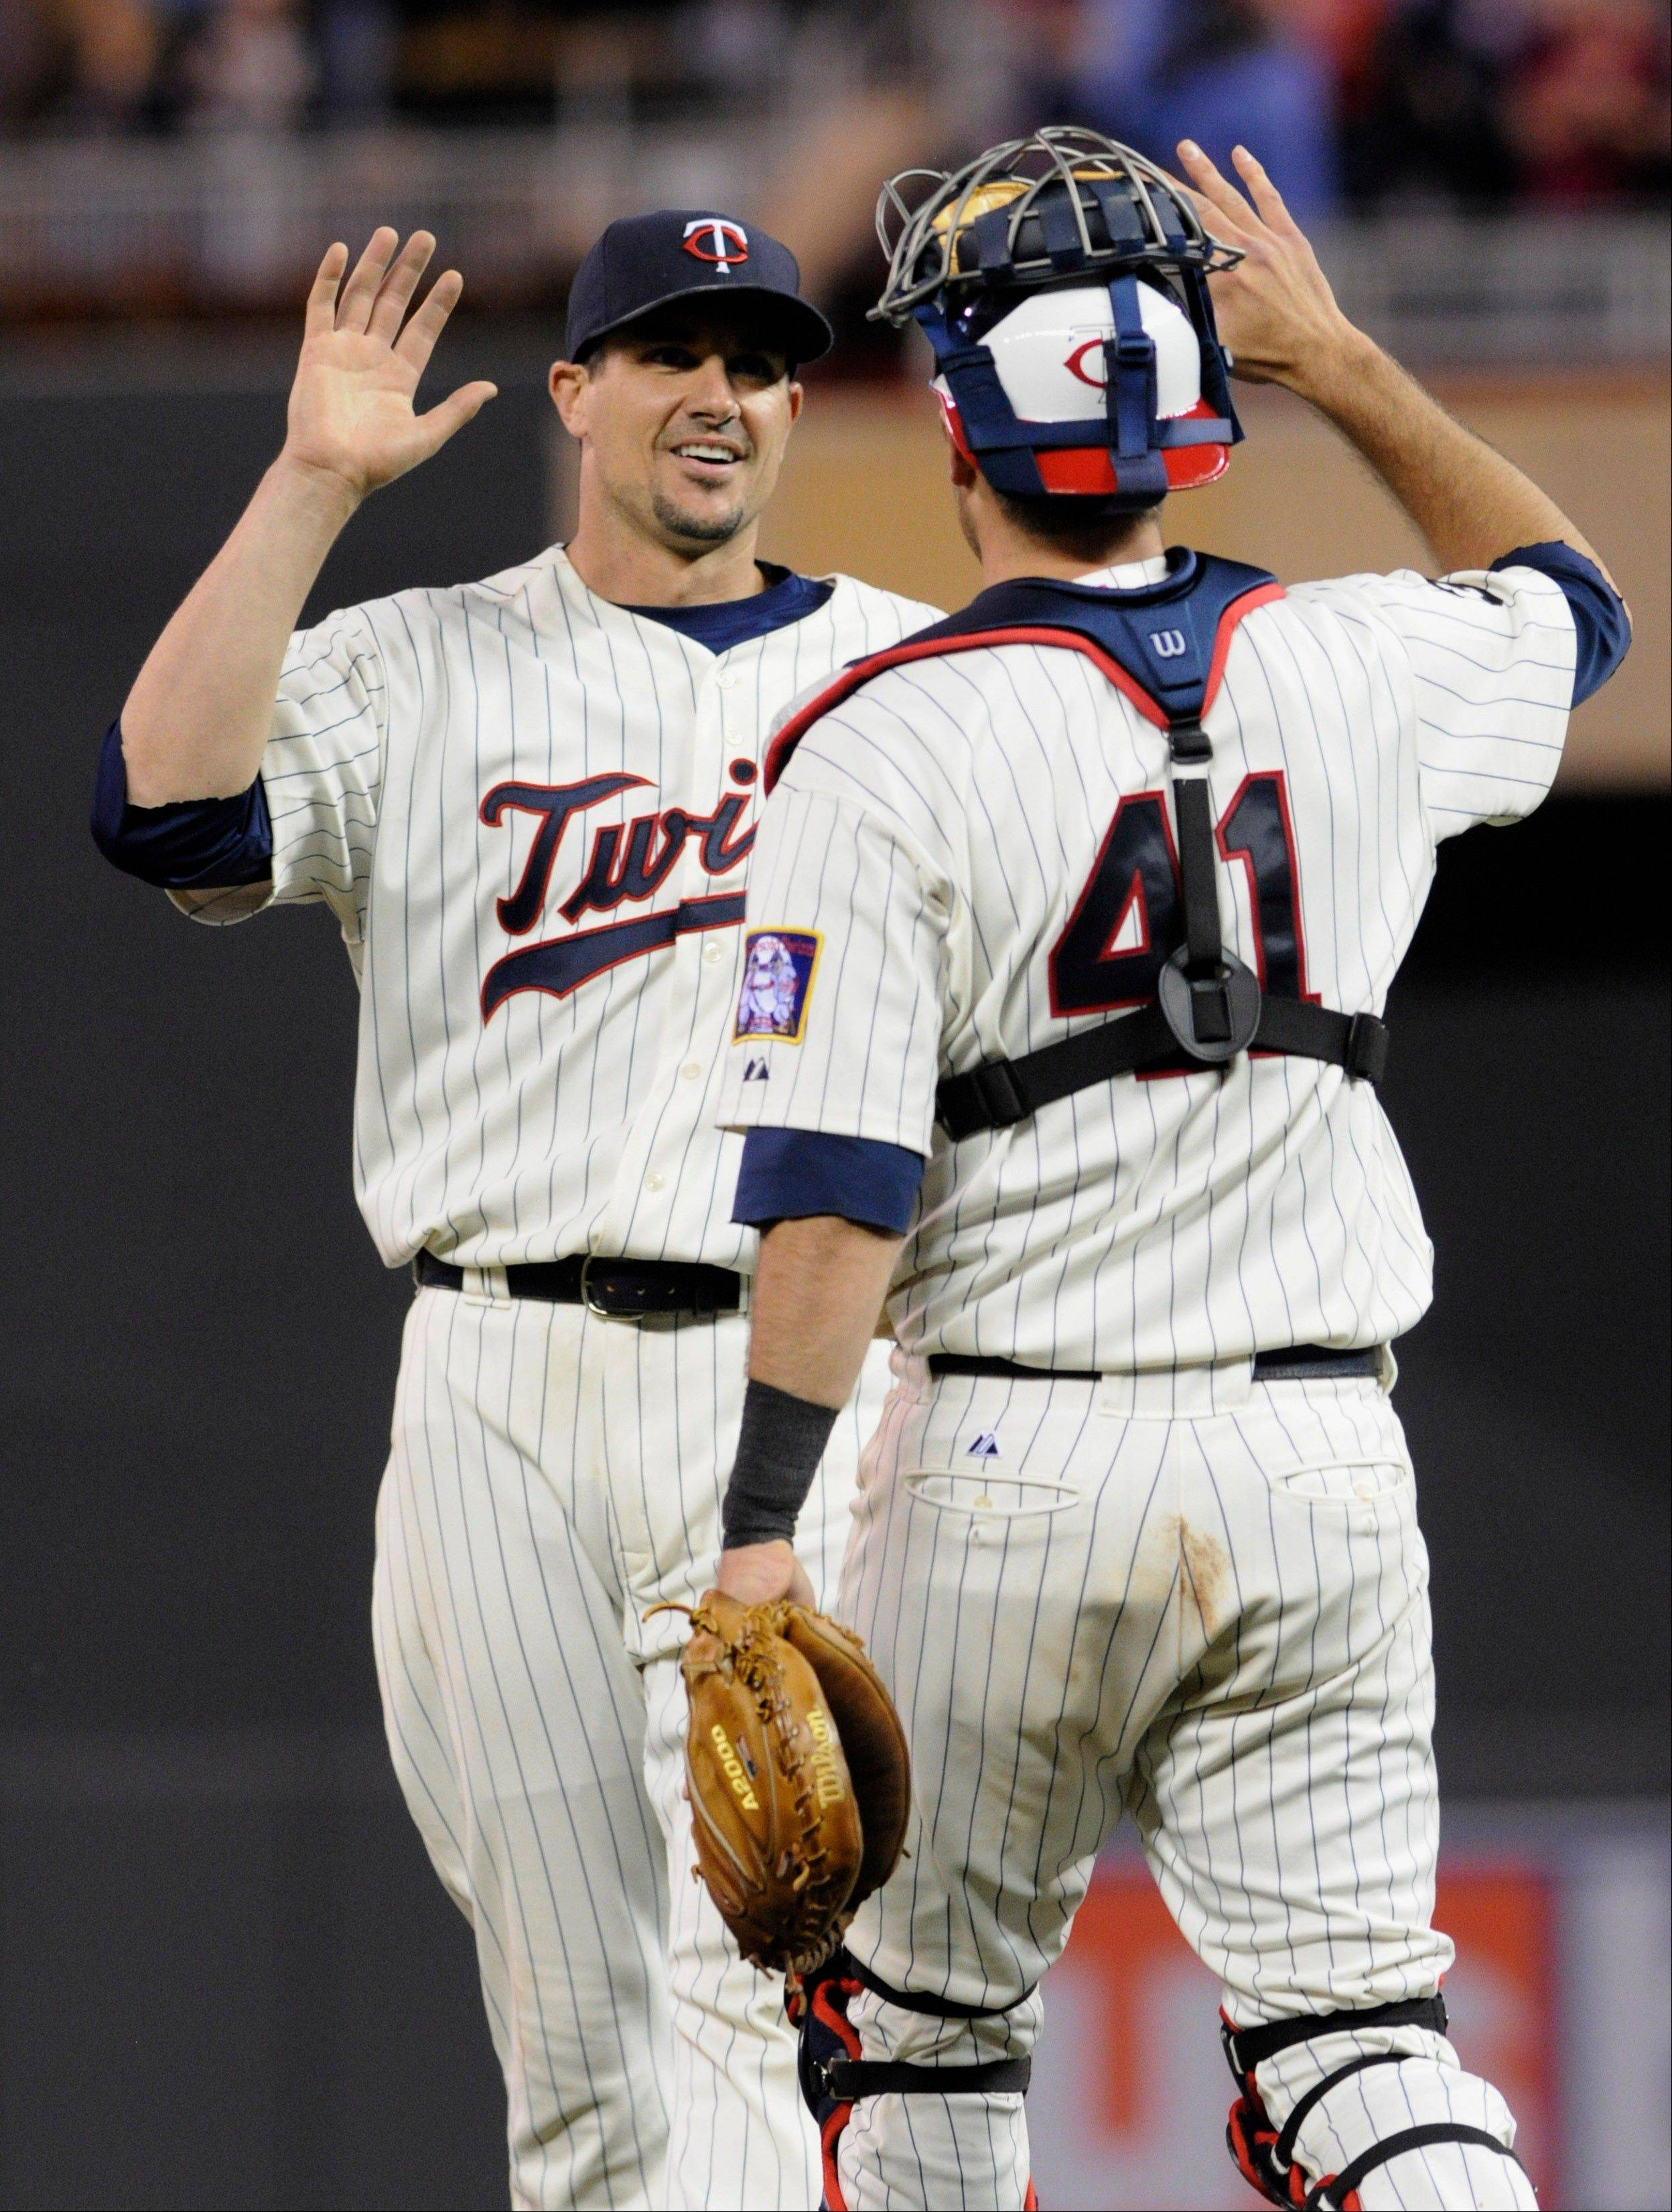 Minnesota Twins pitcher Carl Pavno, left, and catcher Drew Butera celebrate their 4-1 win over the White Sox Wednesday. The Twins have had the Sox number of late.